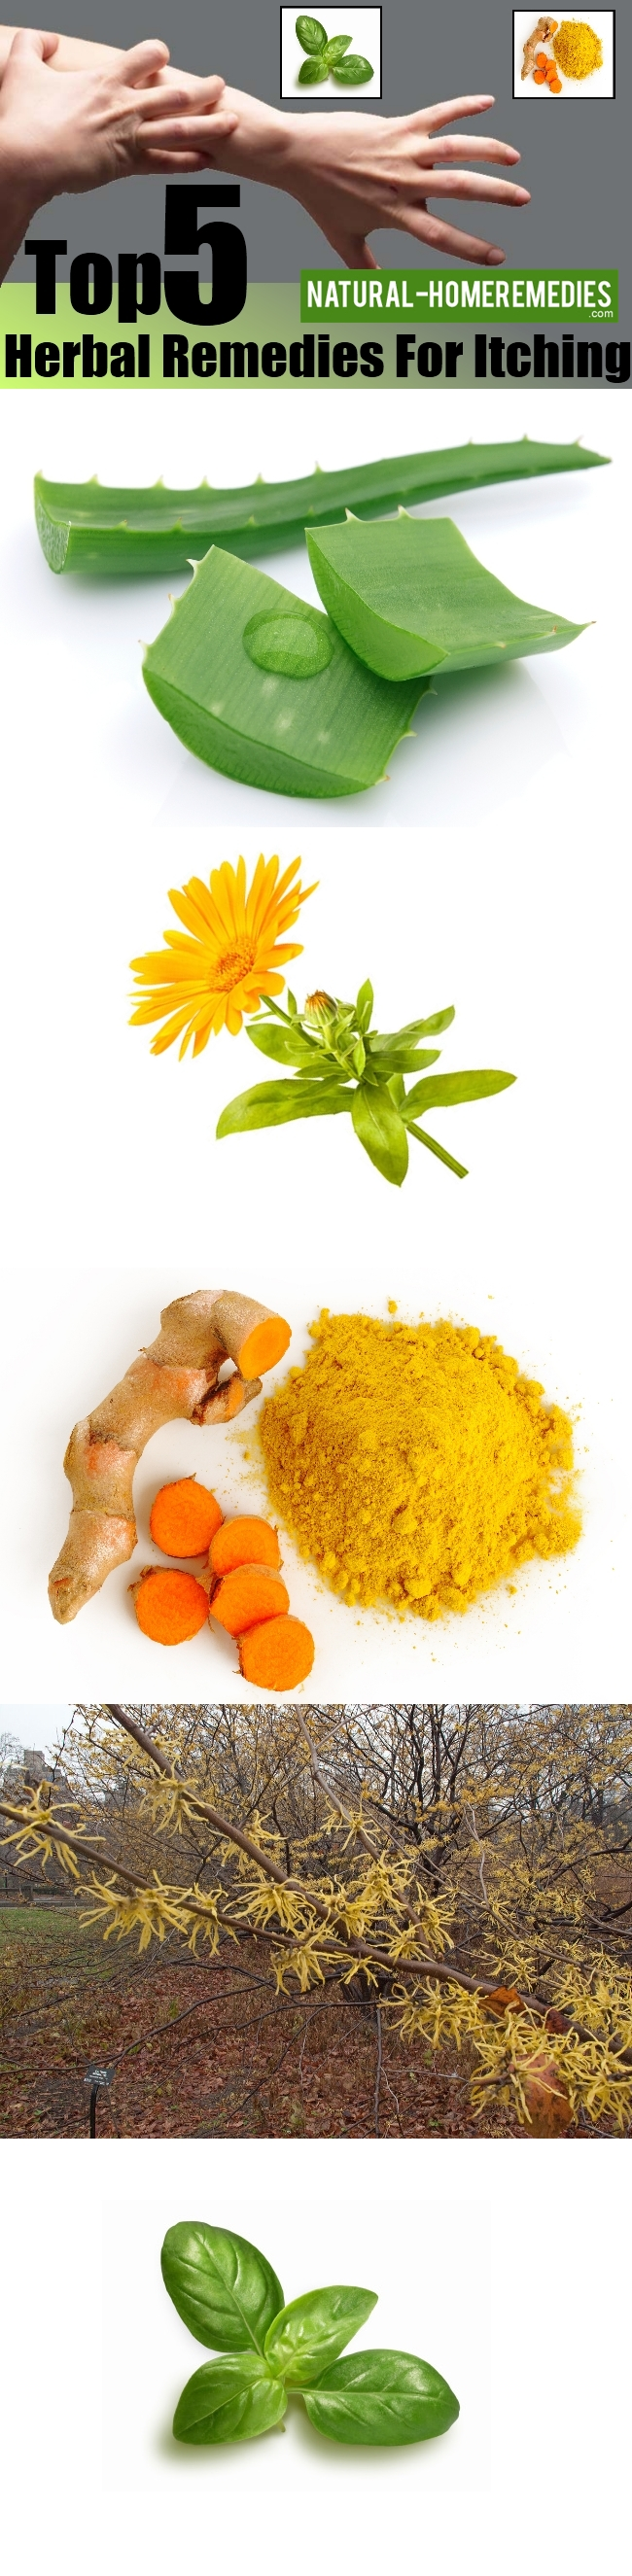 Top 5 Herbal Remedies For Itching